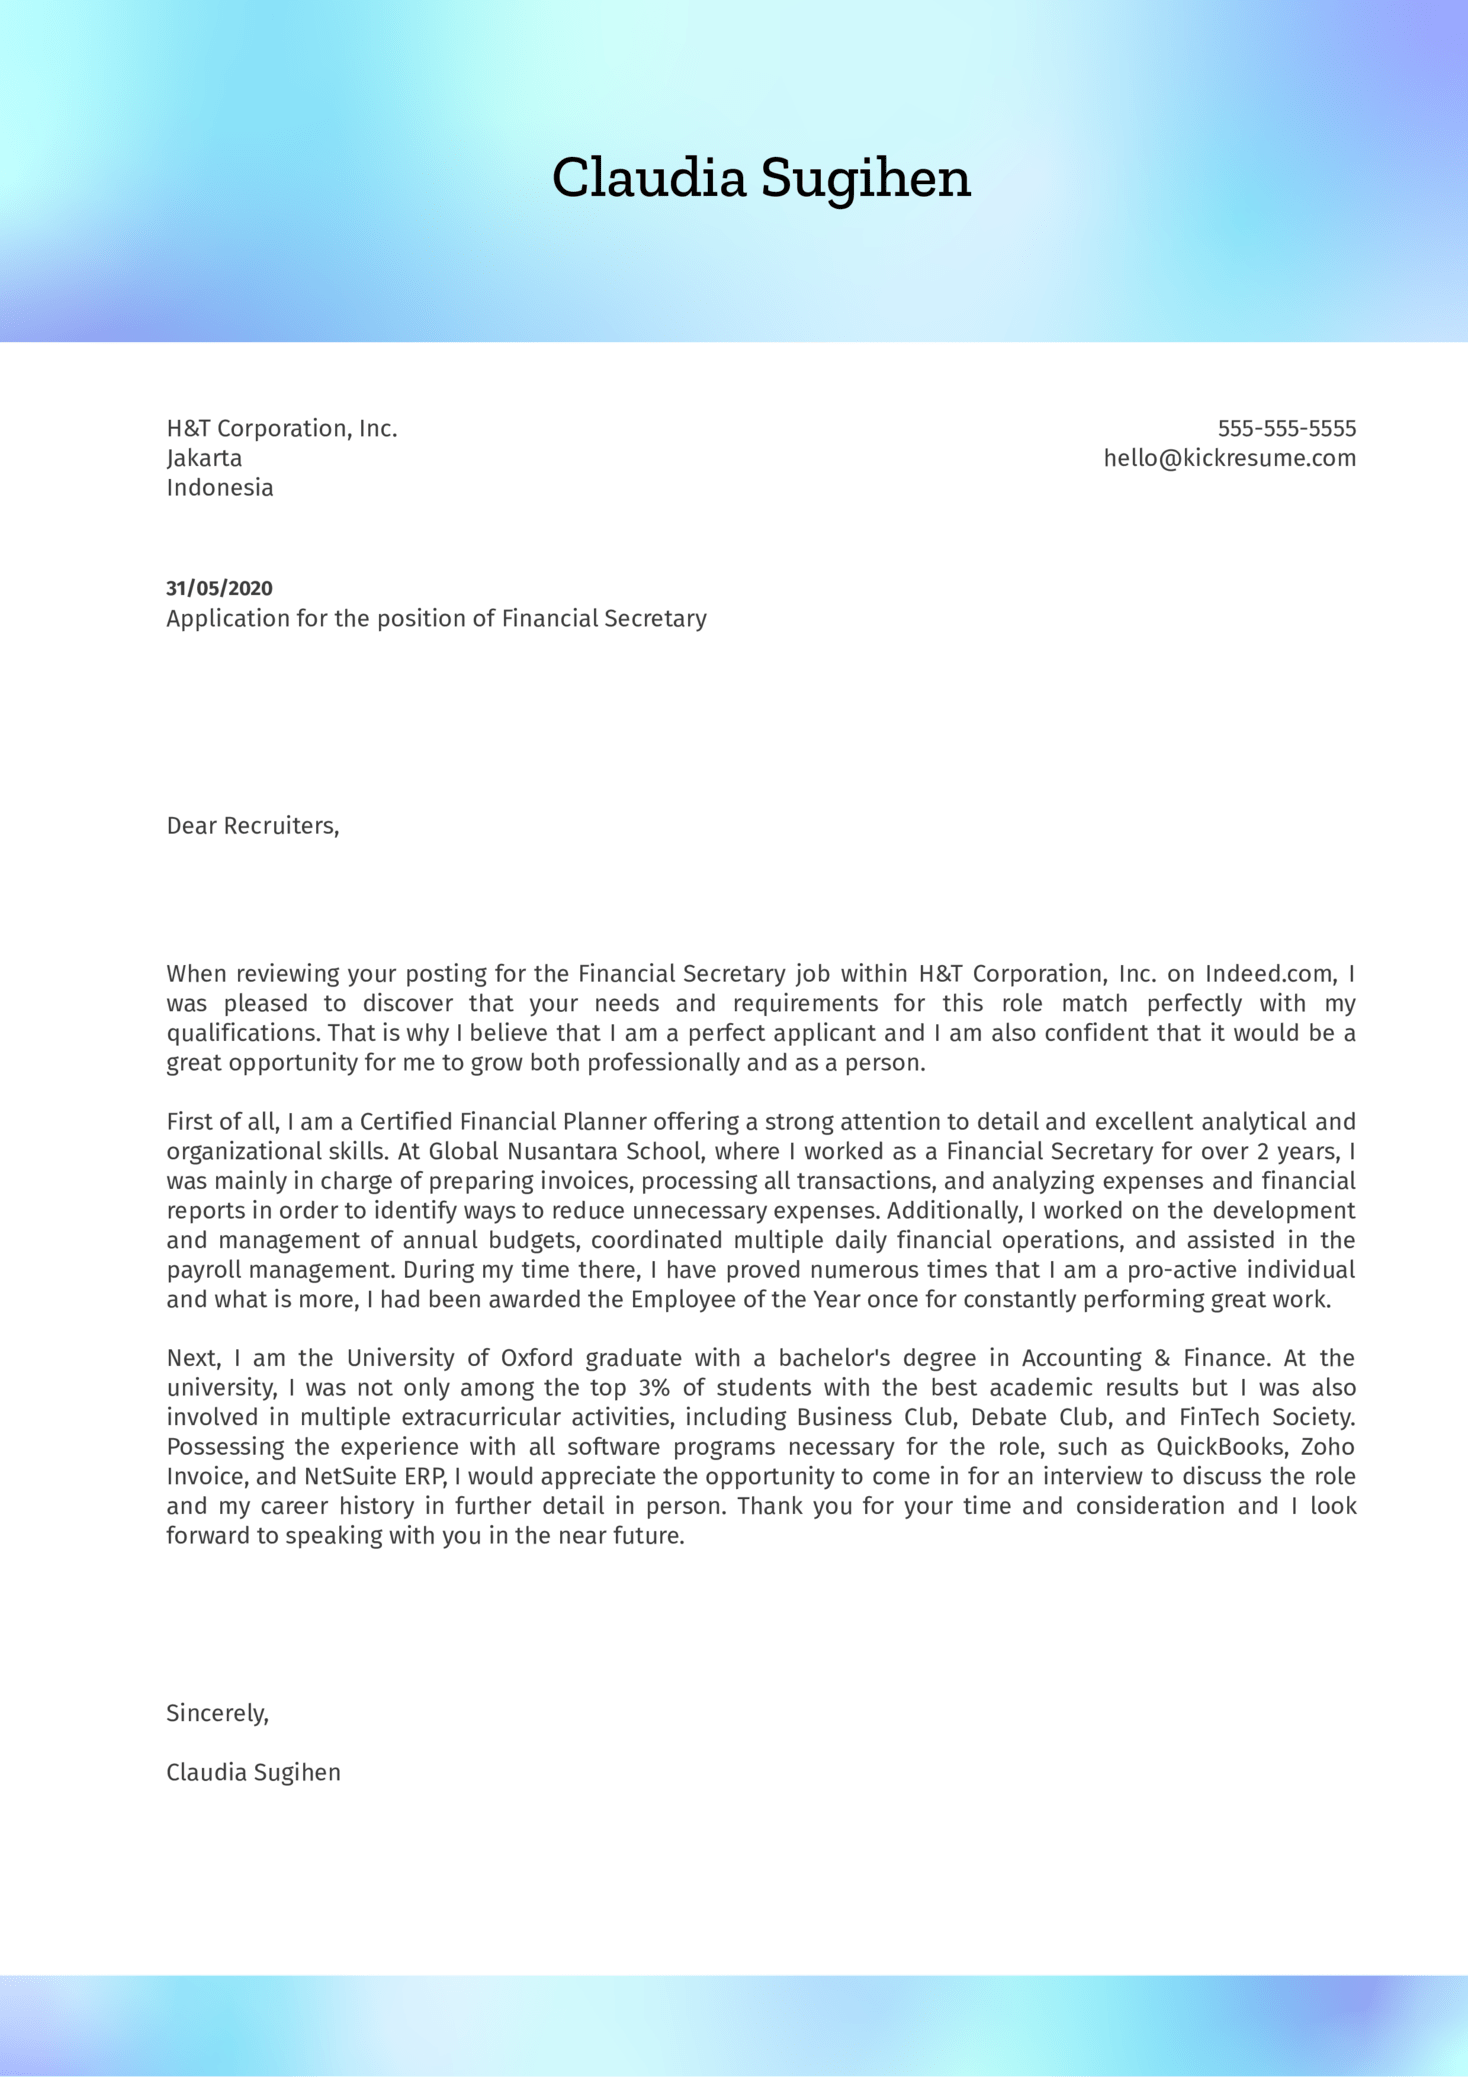 Financial Secretary Cover Letter Example